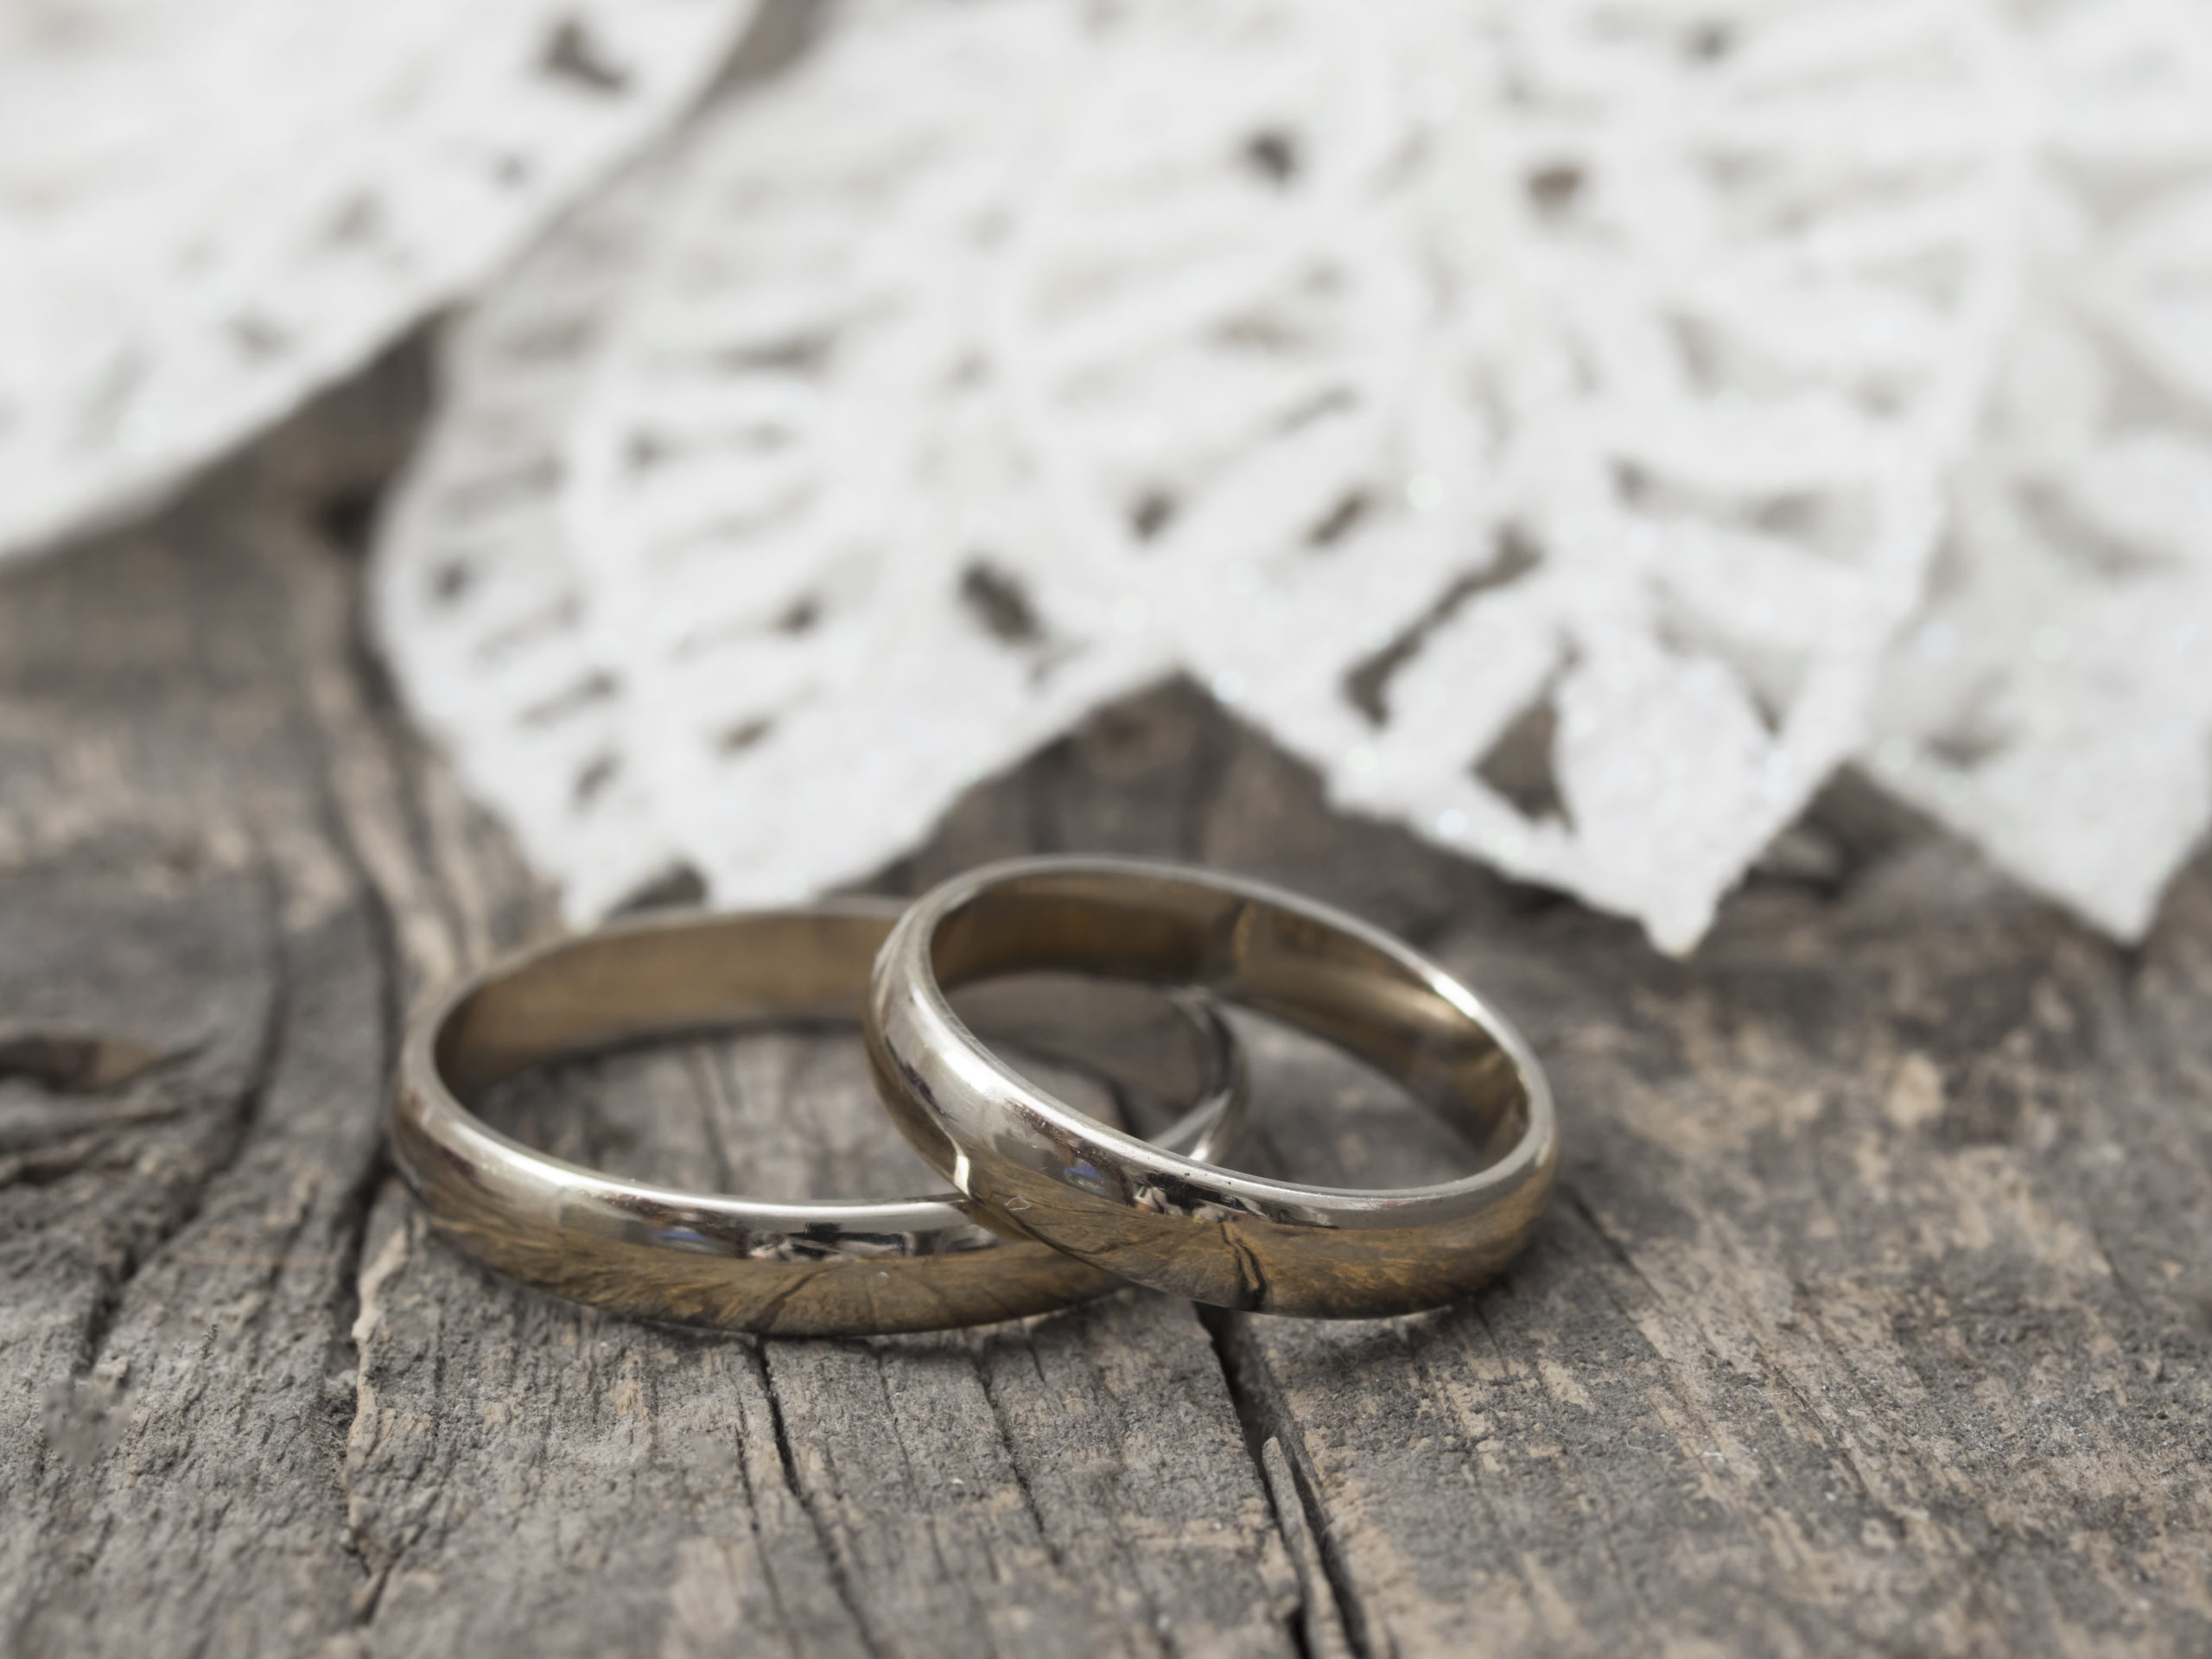 Why I am Thinking of Changing My Surname Even Though I am Happily Married - image of two wedding rings on a table